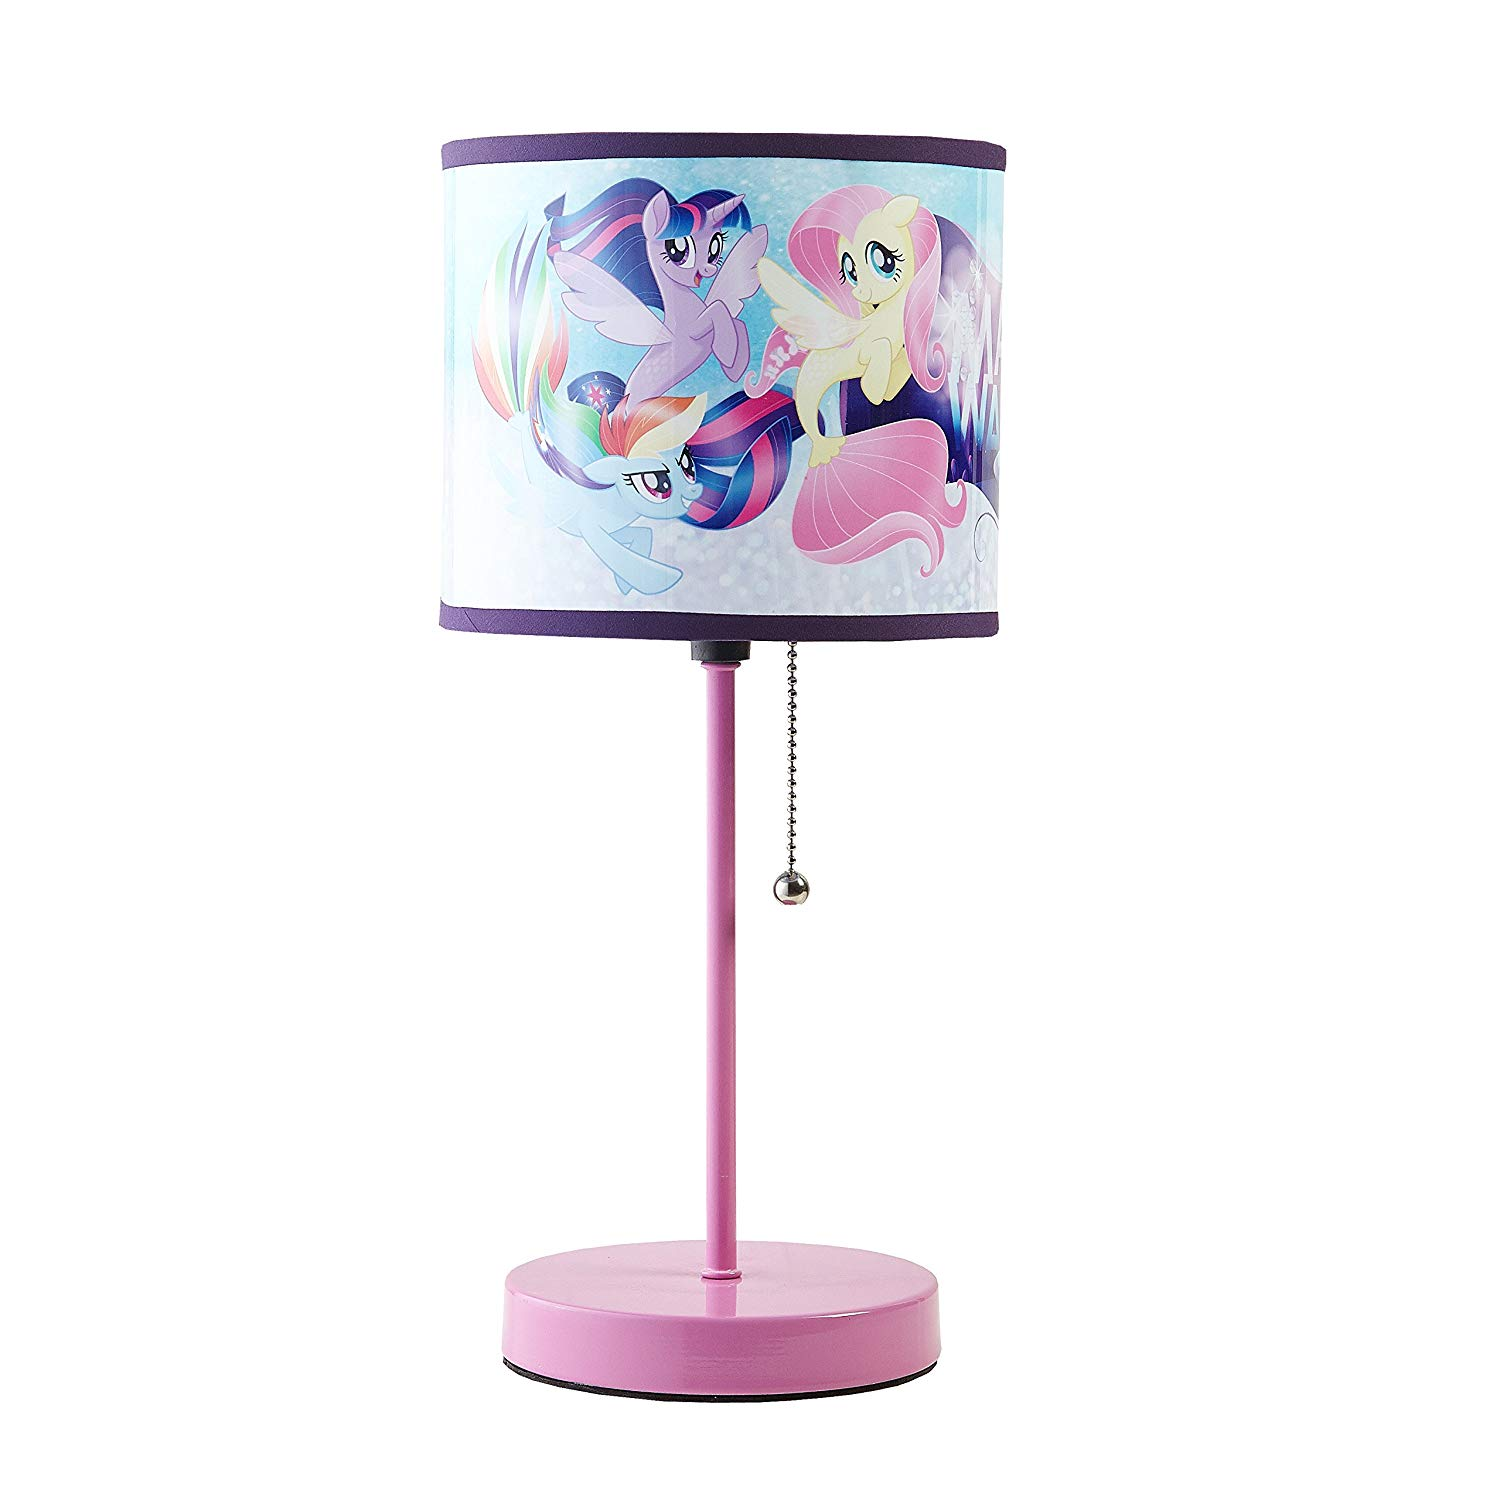 New Quot My Little Pony The Movie Quot Sea Pony Stick Table Lamp